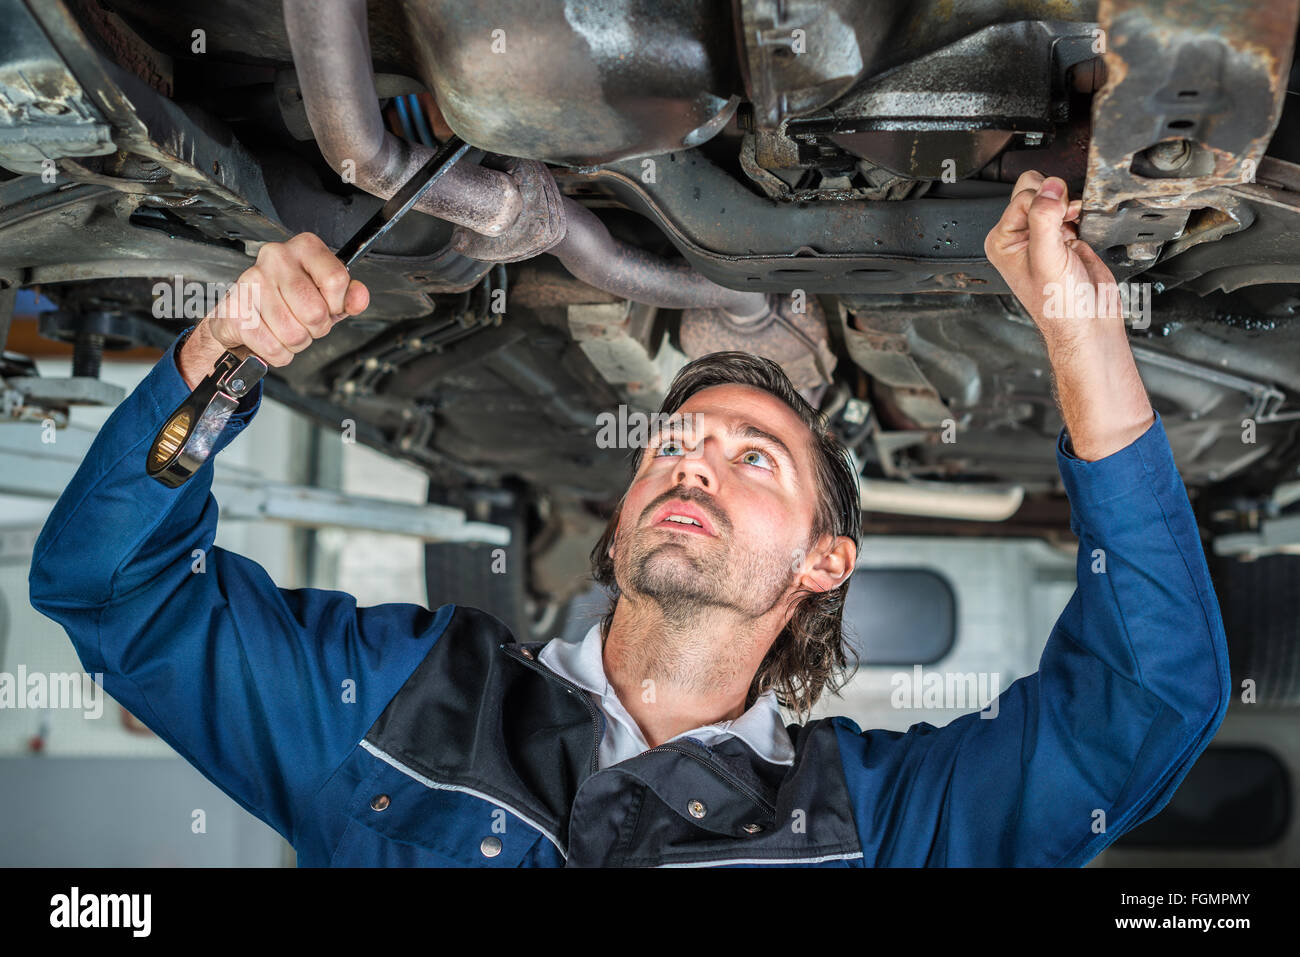 Mechanic repairing a lifted car wit - Stock Image